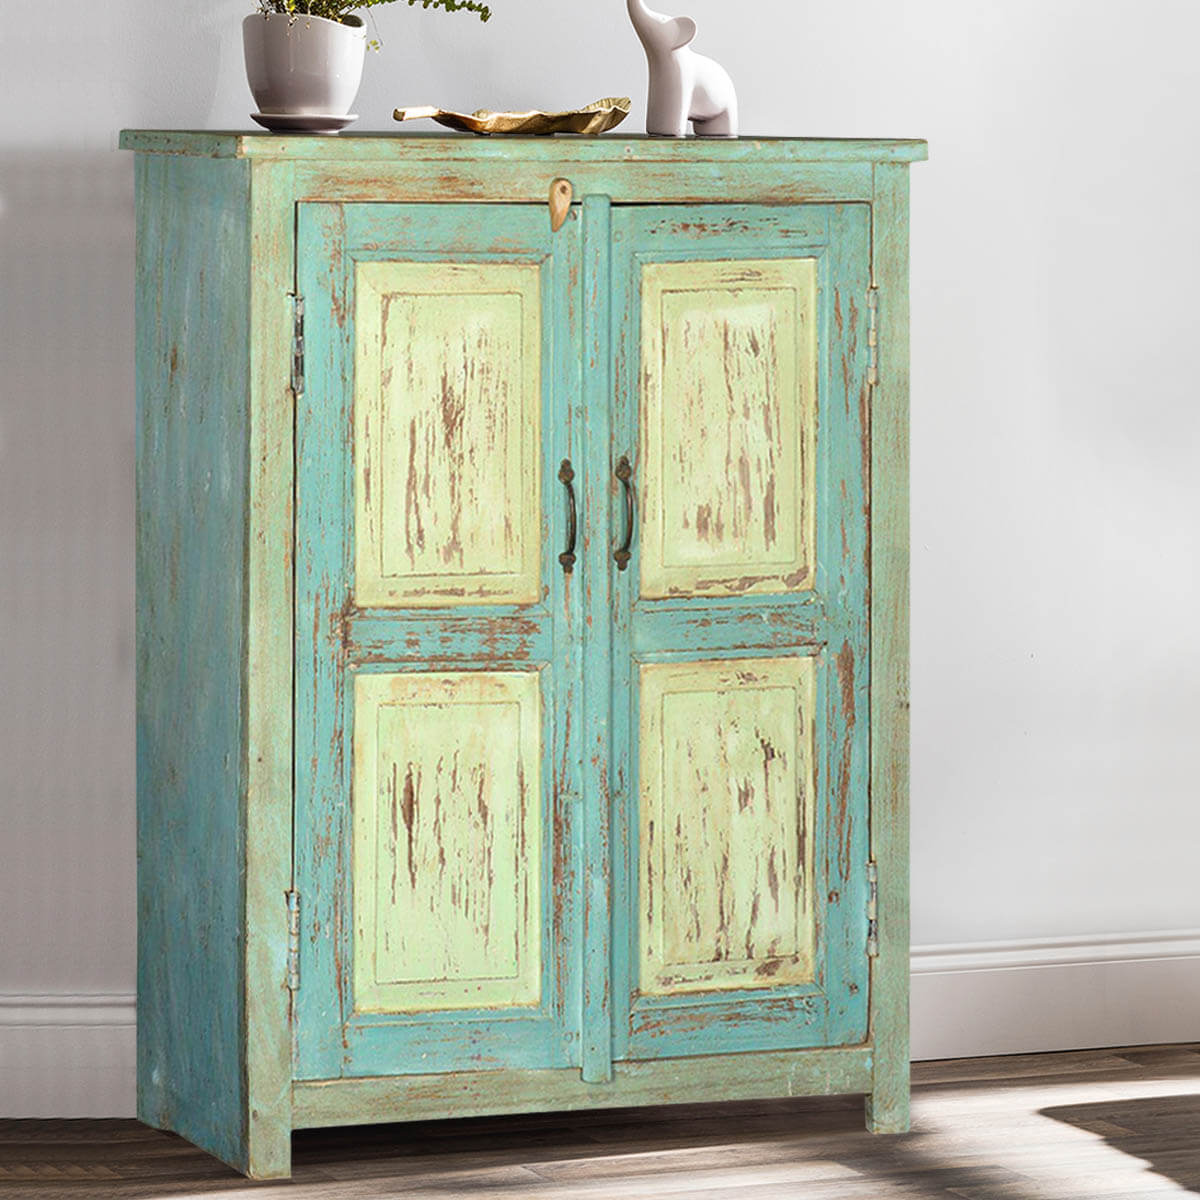 Deersville Blue & Green Reclaimed Wood Storage Cabinet